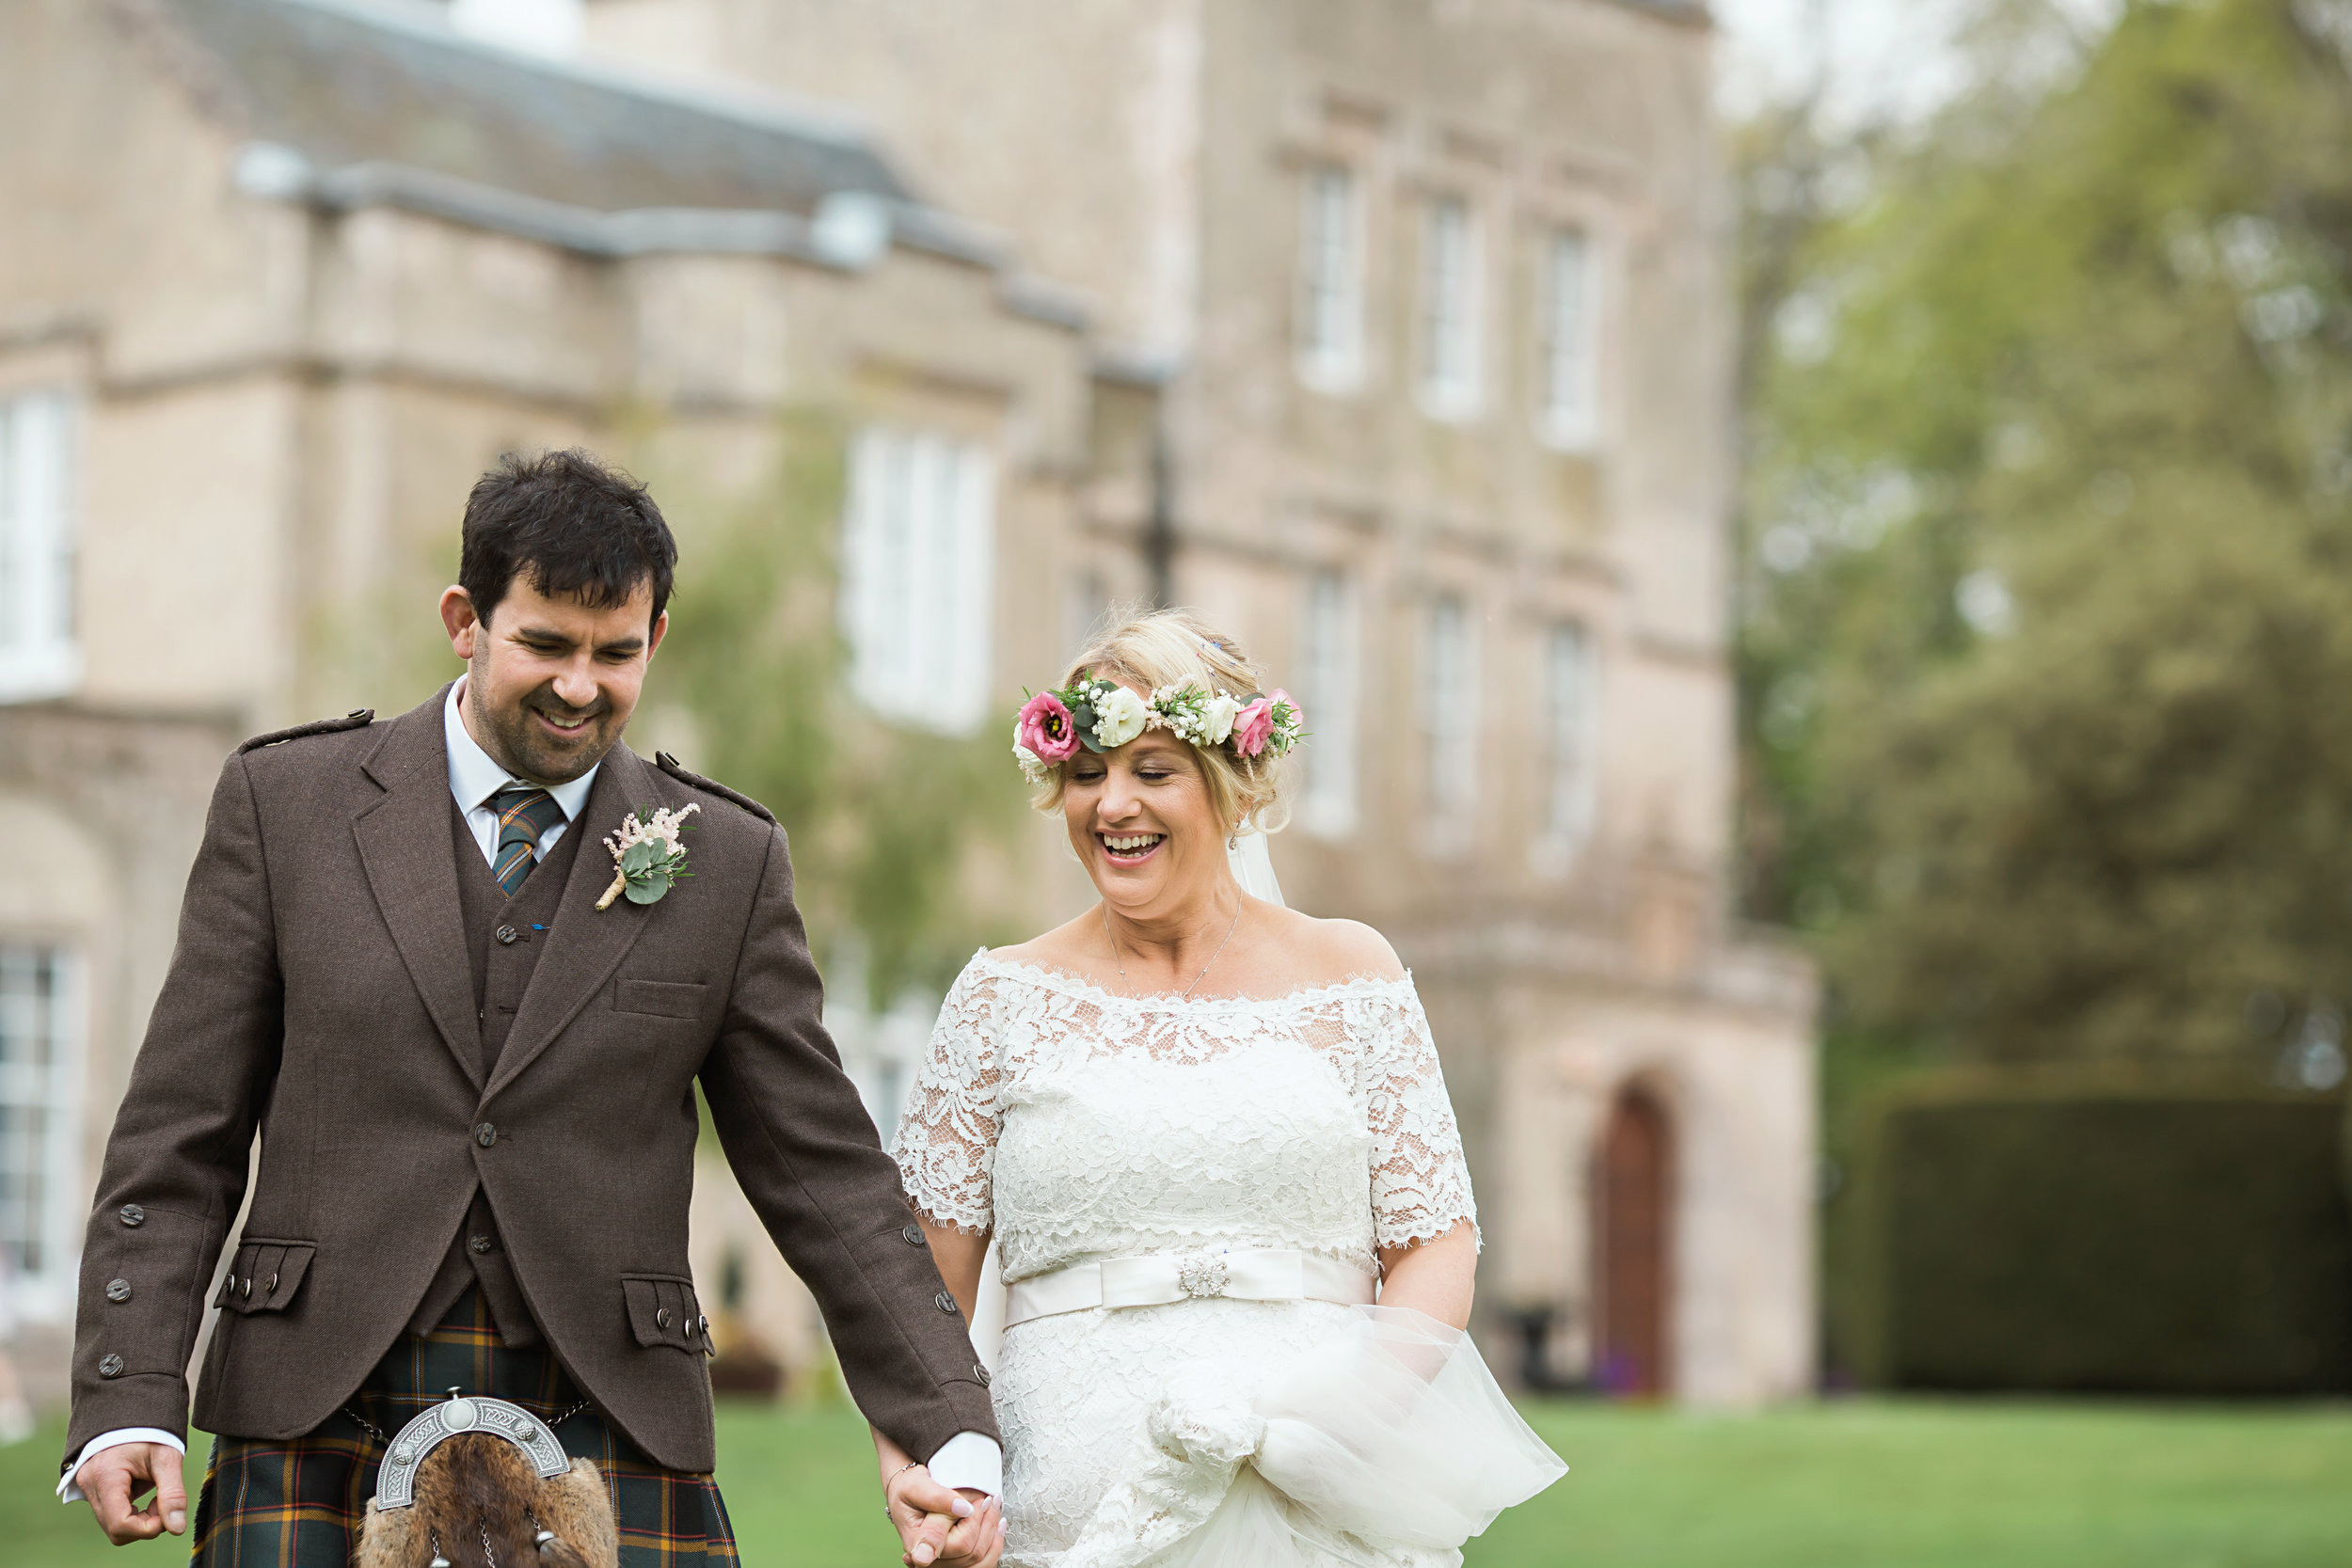 danirosephotography.weddingphotographyaberdeen.pittodriehousewedding3.jpg